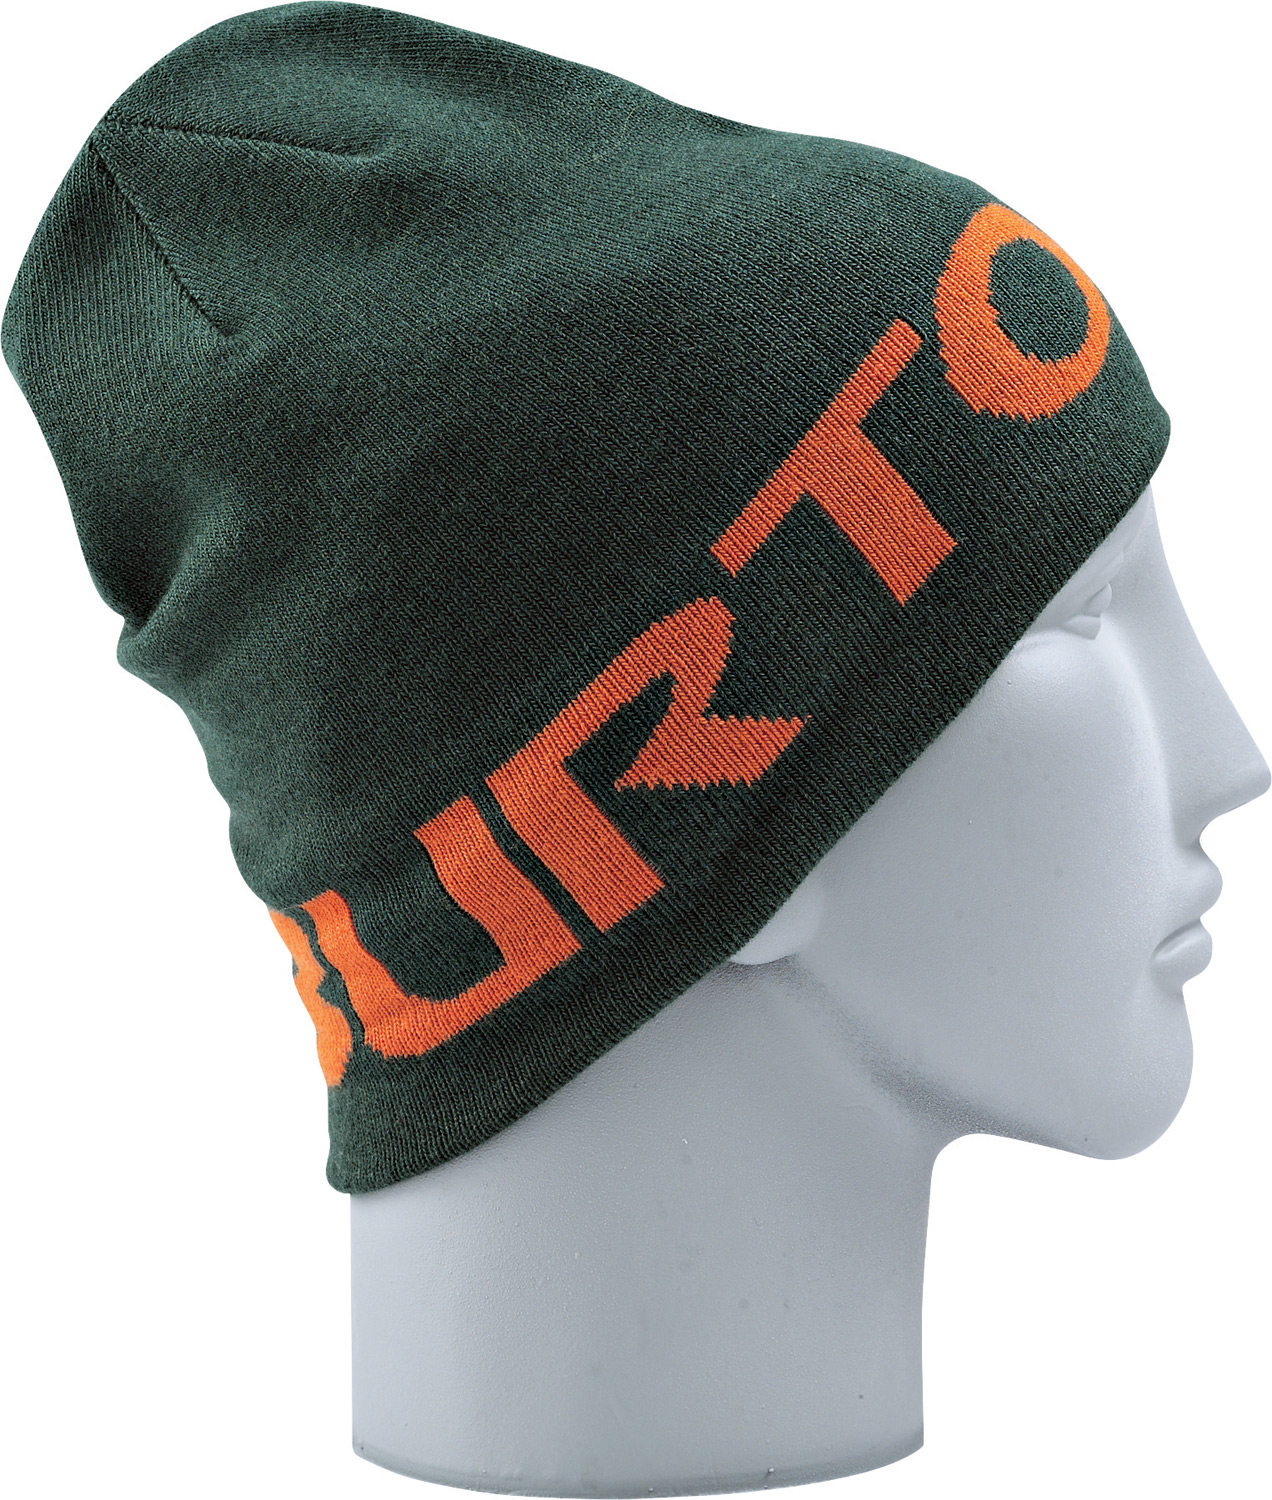 Snowboard Key Features of the Burton Billboard Beanie: Skully Fit One Size Fits All Reversible 100% Fine Knit Acrylic - $12.95